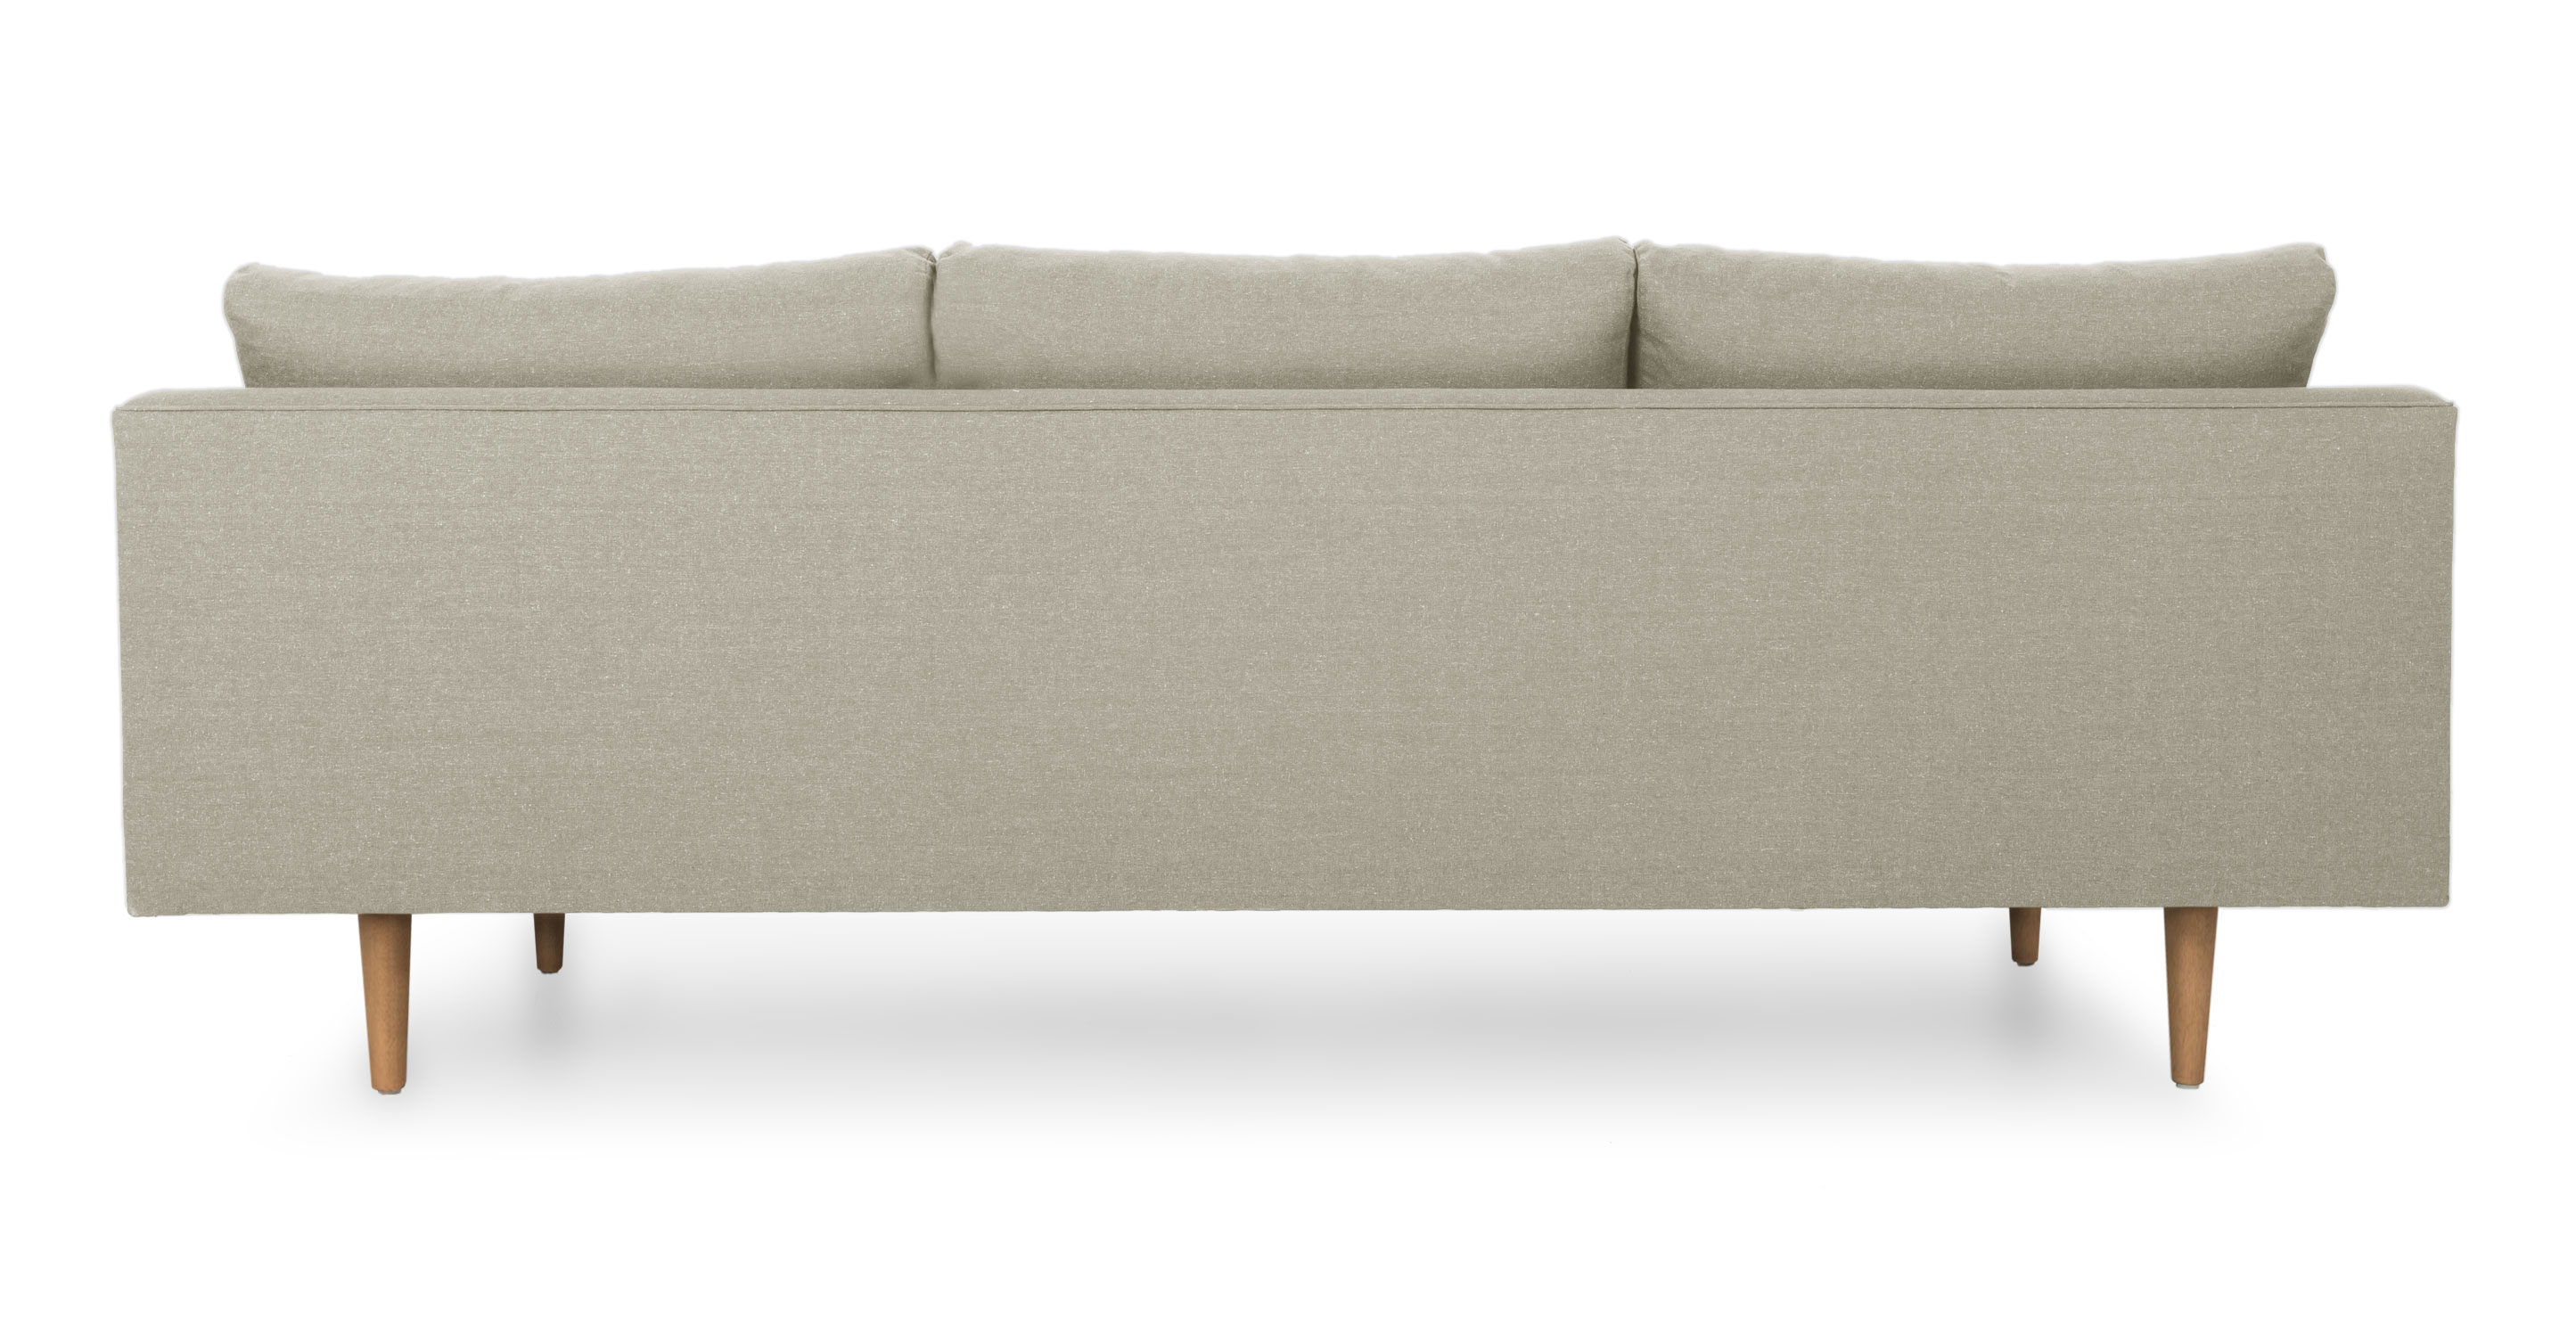 mid century style sofa canada set designs for living room 2017 carl cobble gray sofas article modern